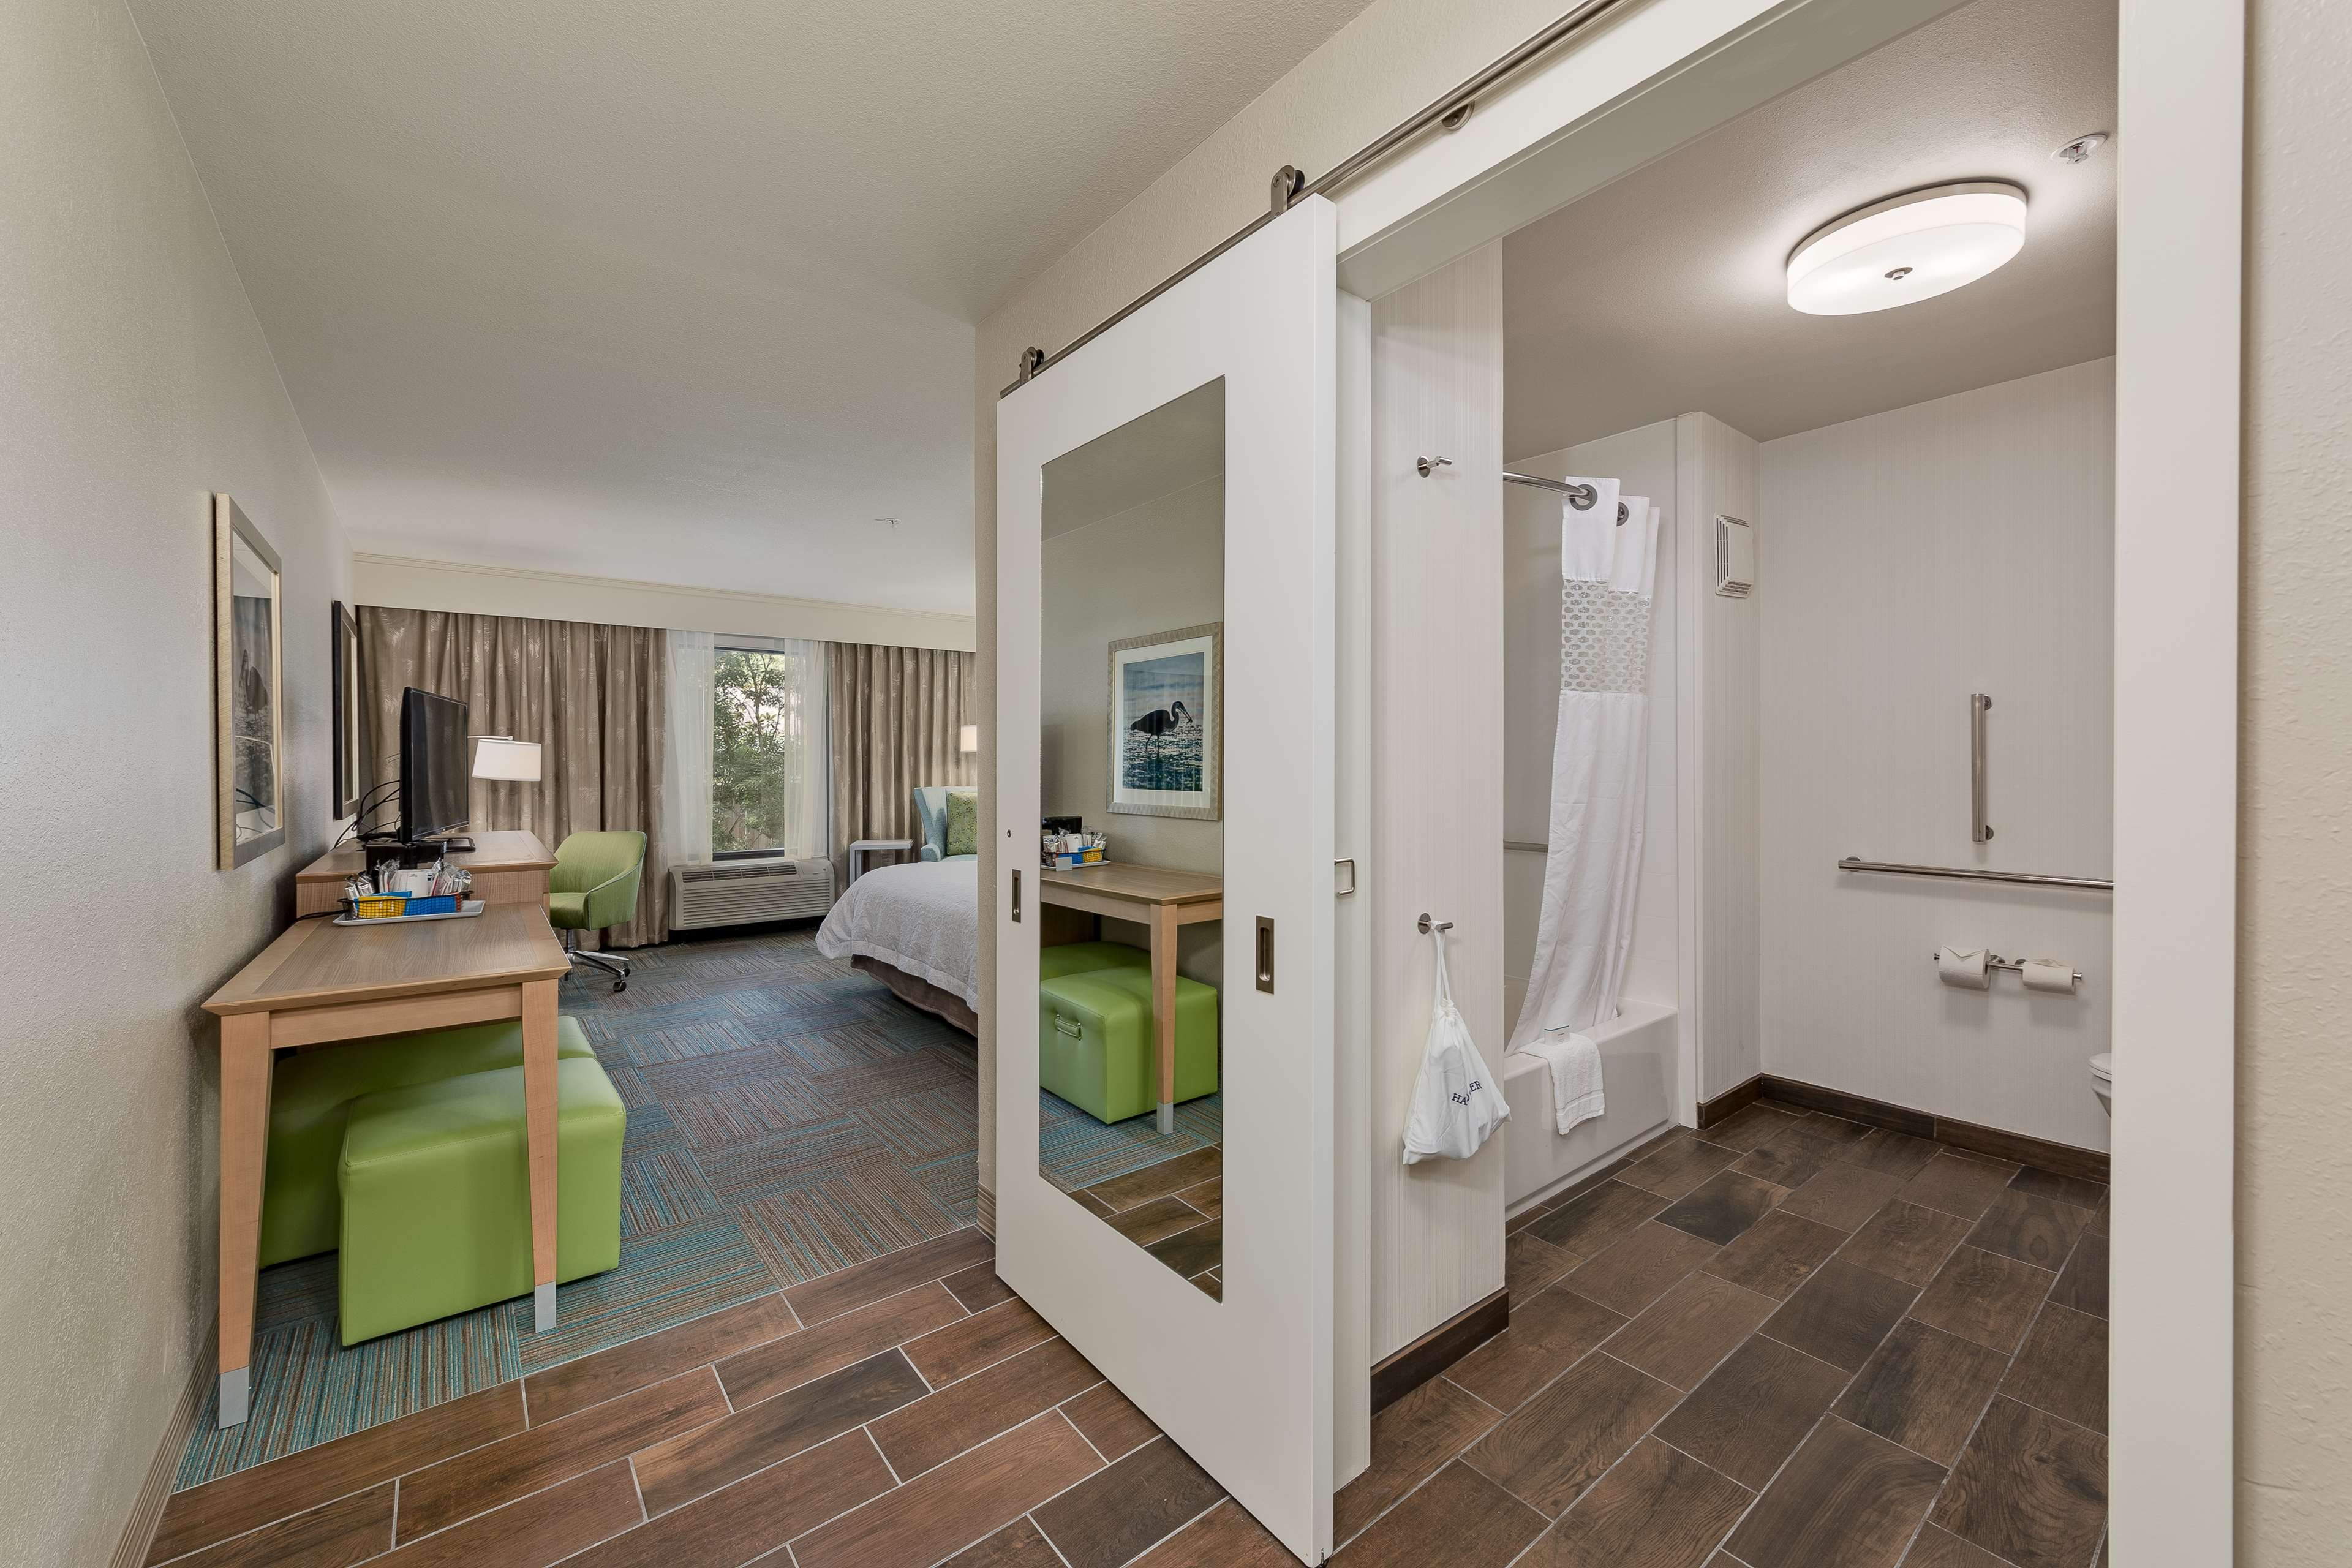 Hampton Inn Niceville-Eglin Air Force Base image 16